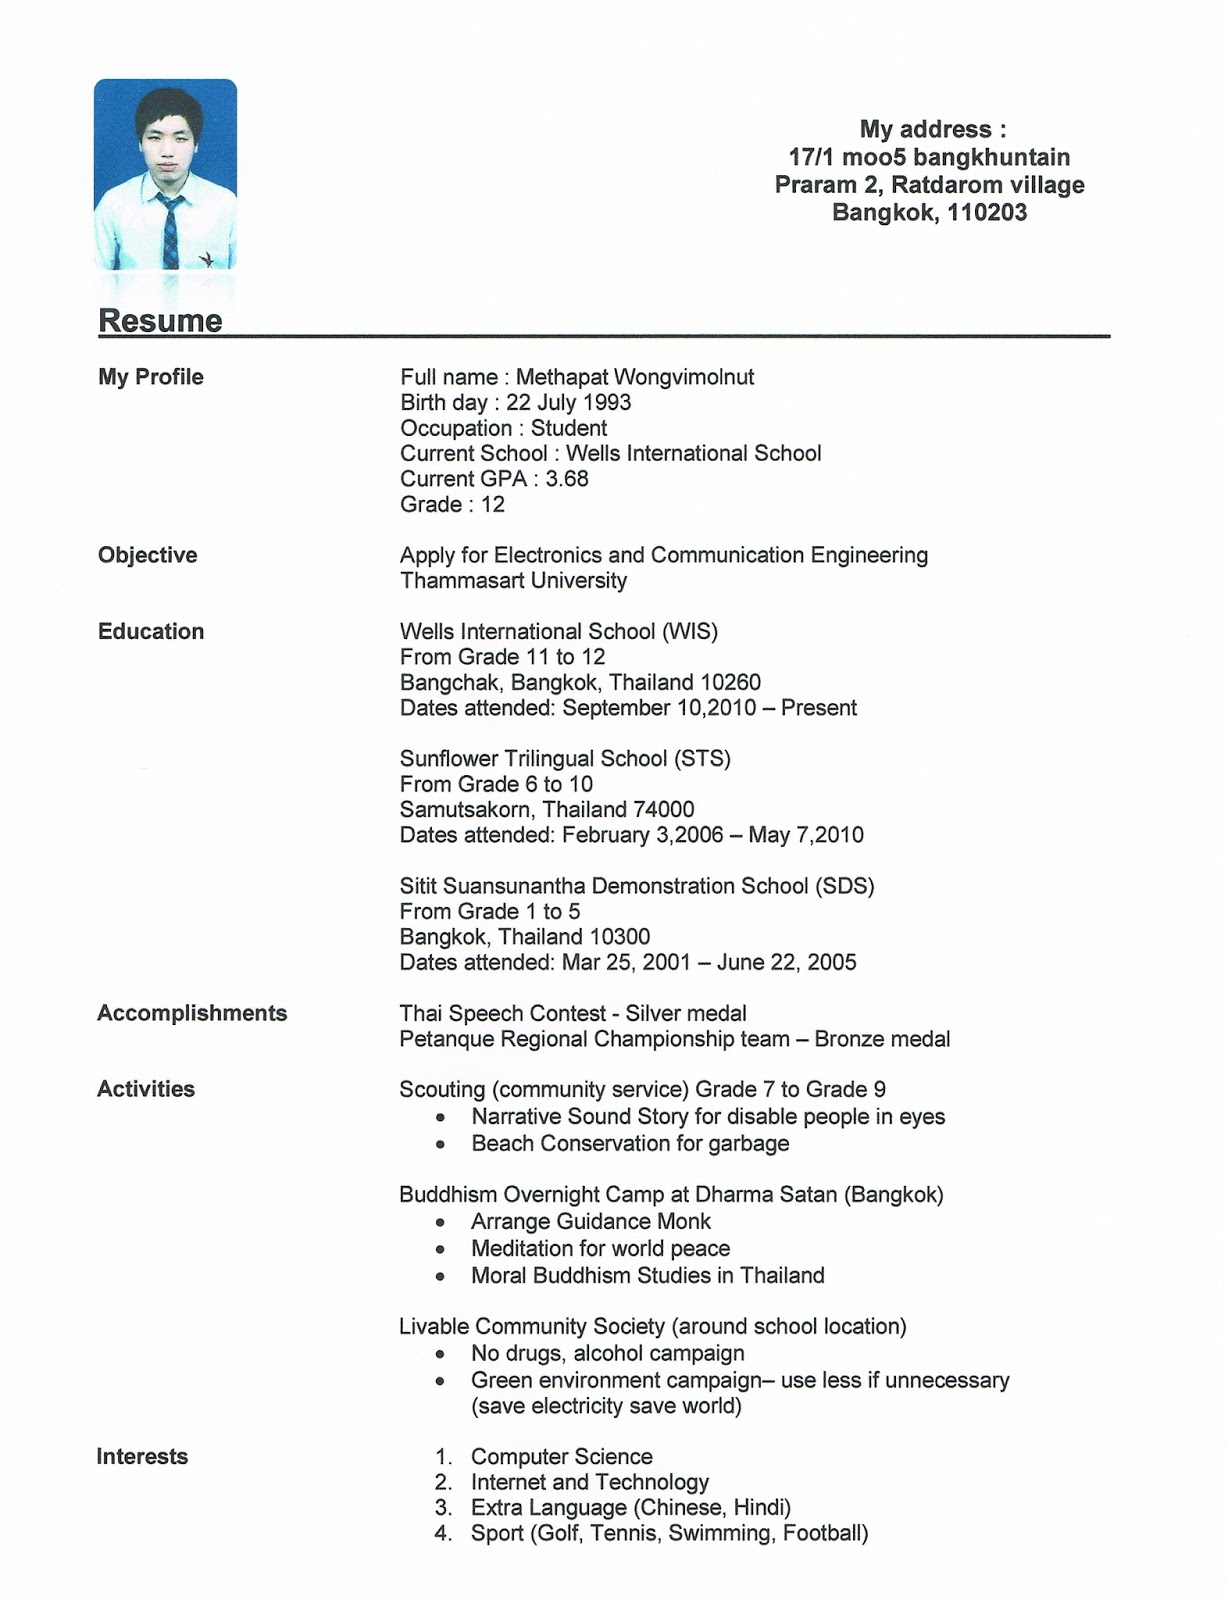 example resume for banquet server cover letter sample for job resume and resume templates resume samples - Banquet Server Cover Letter